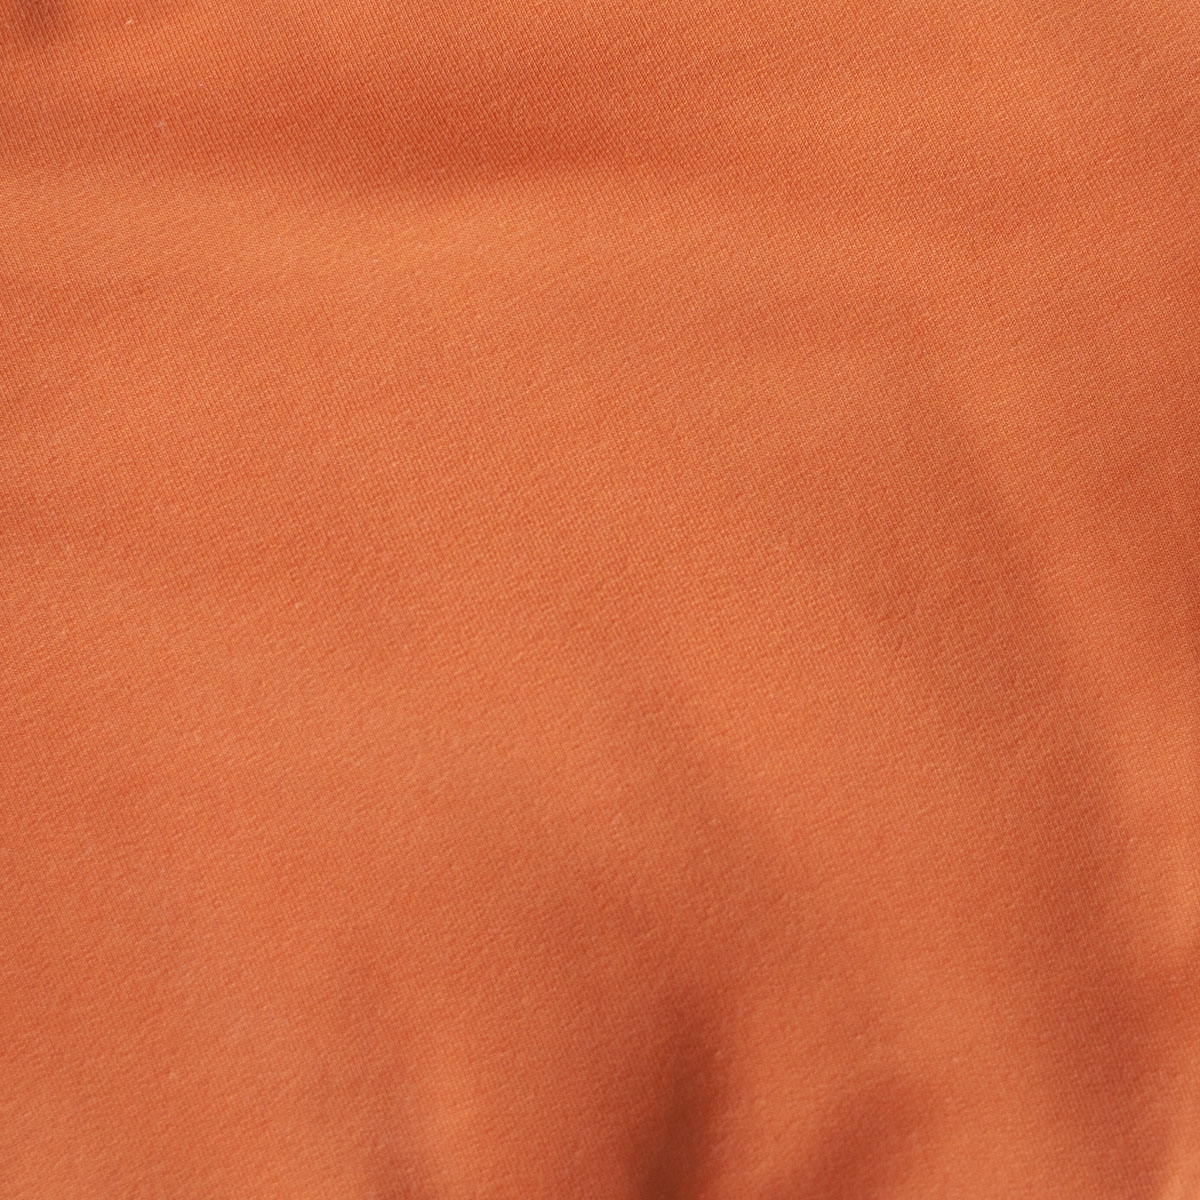 Bio-Sweat - angeraut - orange